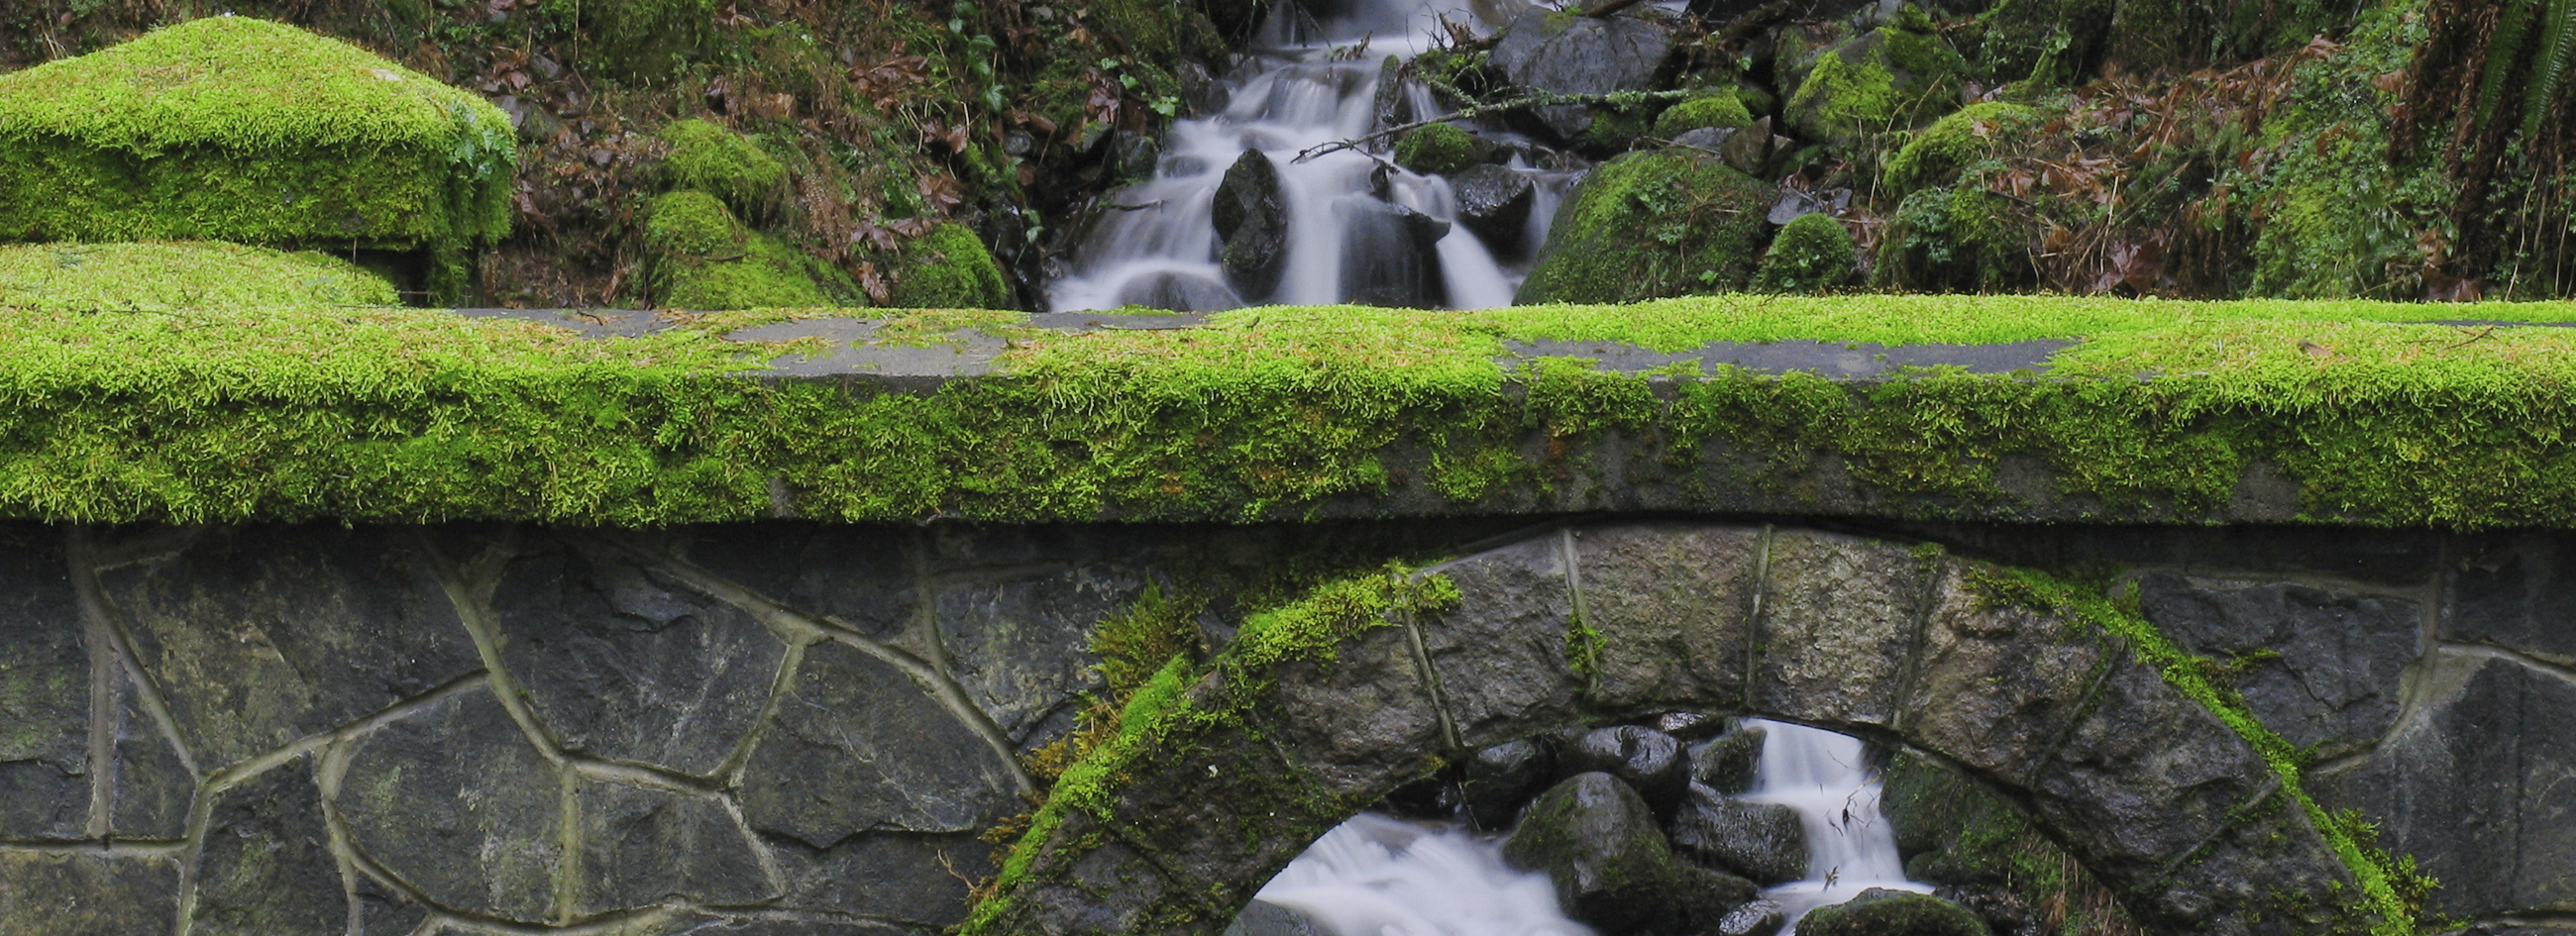 Mossy bridge waterfall